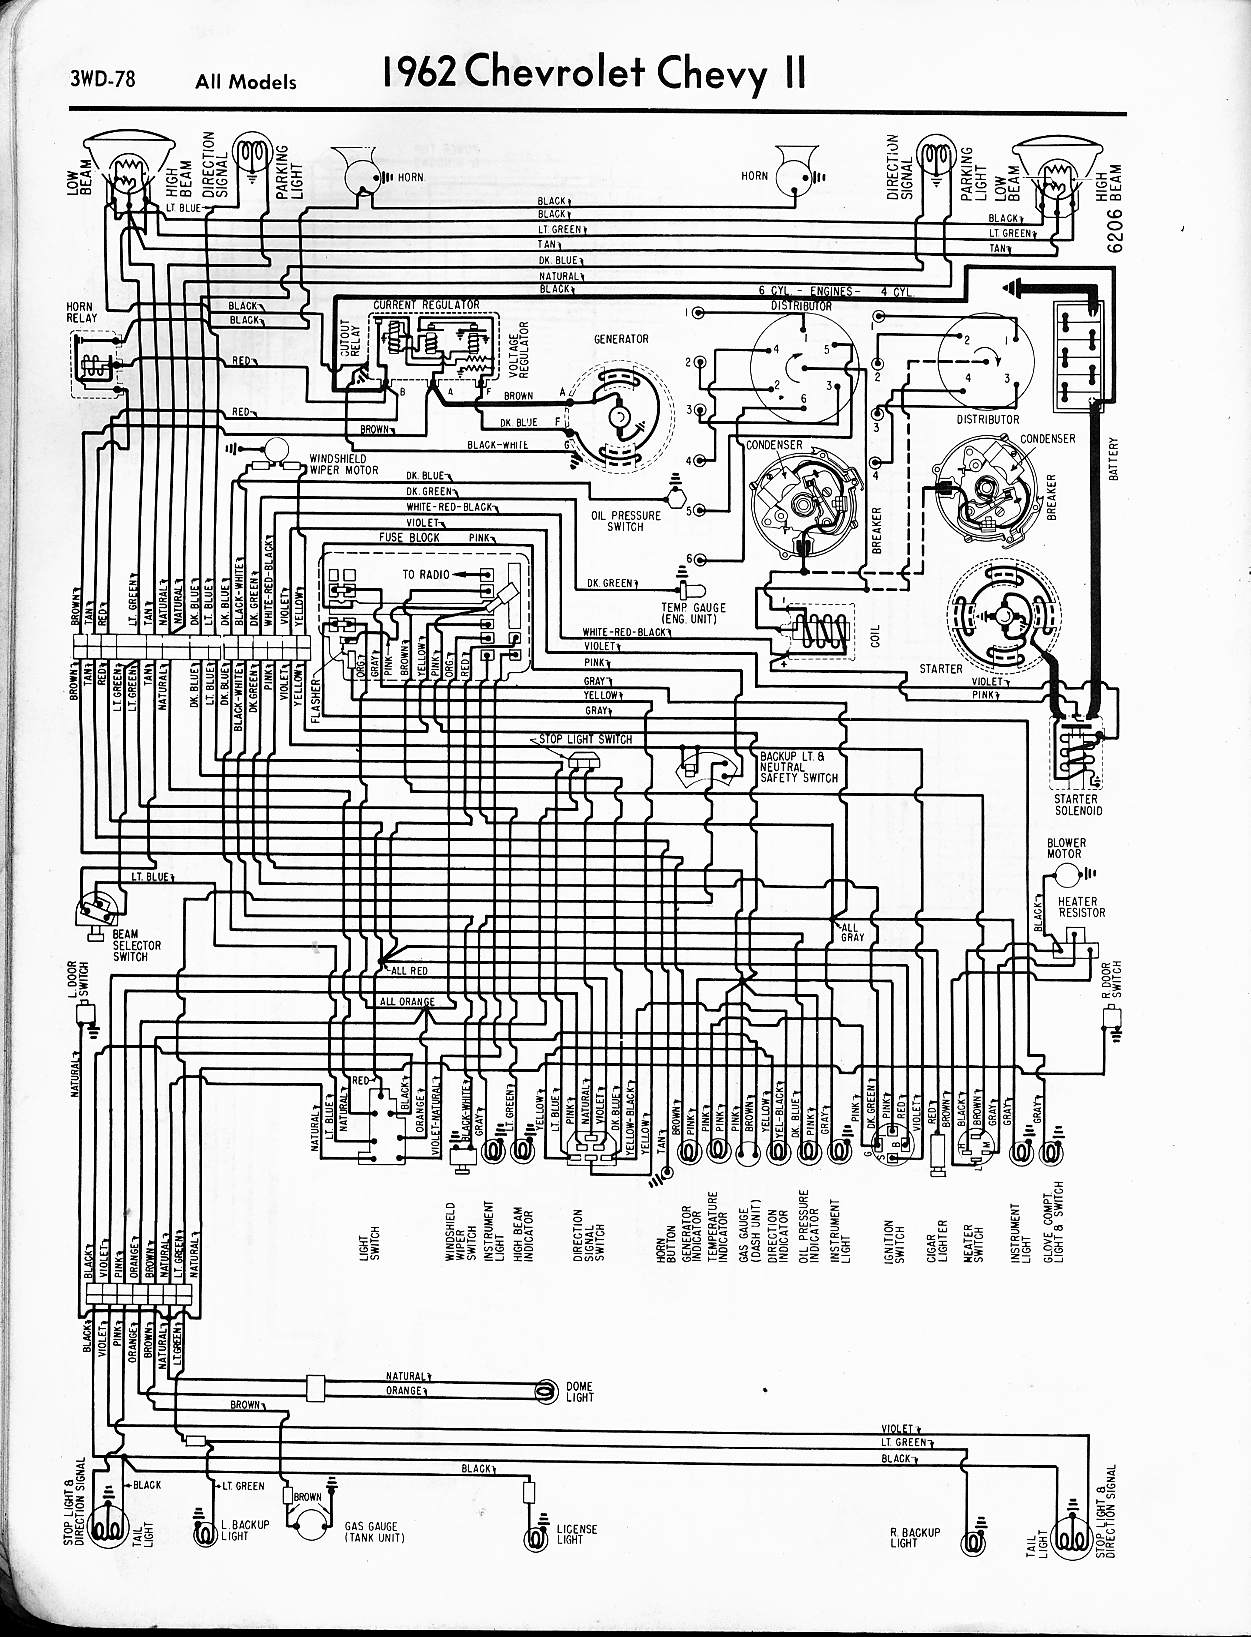 MWireChev62_3WD 078 57 65 chevy wiring diagrams 1961 impala wiper motor wiring diagram at mifinder.co